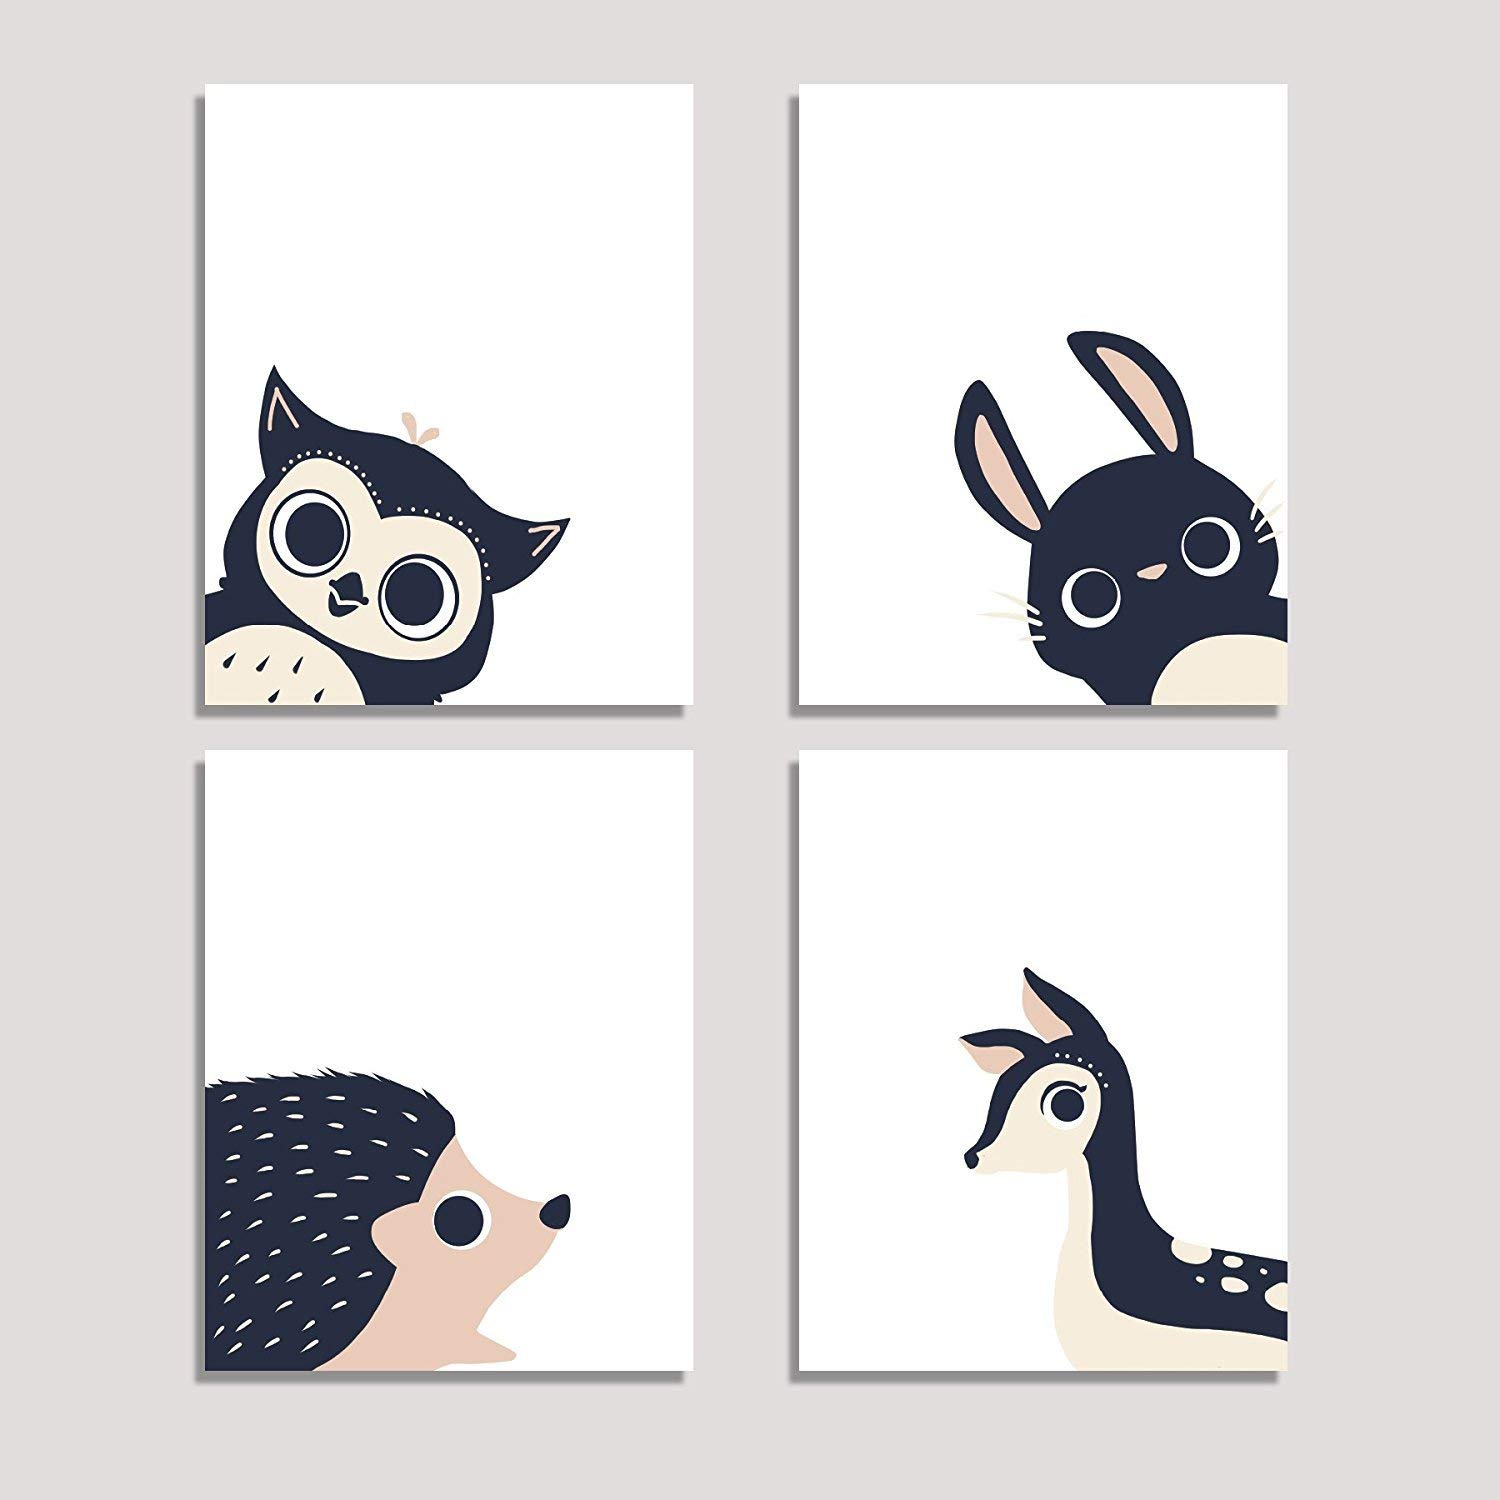 Peeking Animal Collection, Children's Wall Art Prints, Set of Four 08x10 Inch Print, Forest Nursery, Gender Neutral Nursery Decor, Rabbit, Deer, Owl, Hedgehog Decor, Woodland Nursery, Baby Room Decor